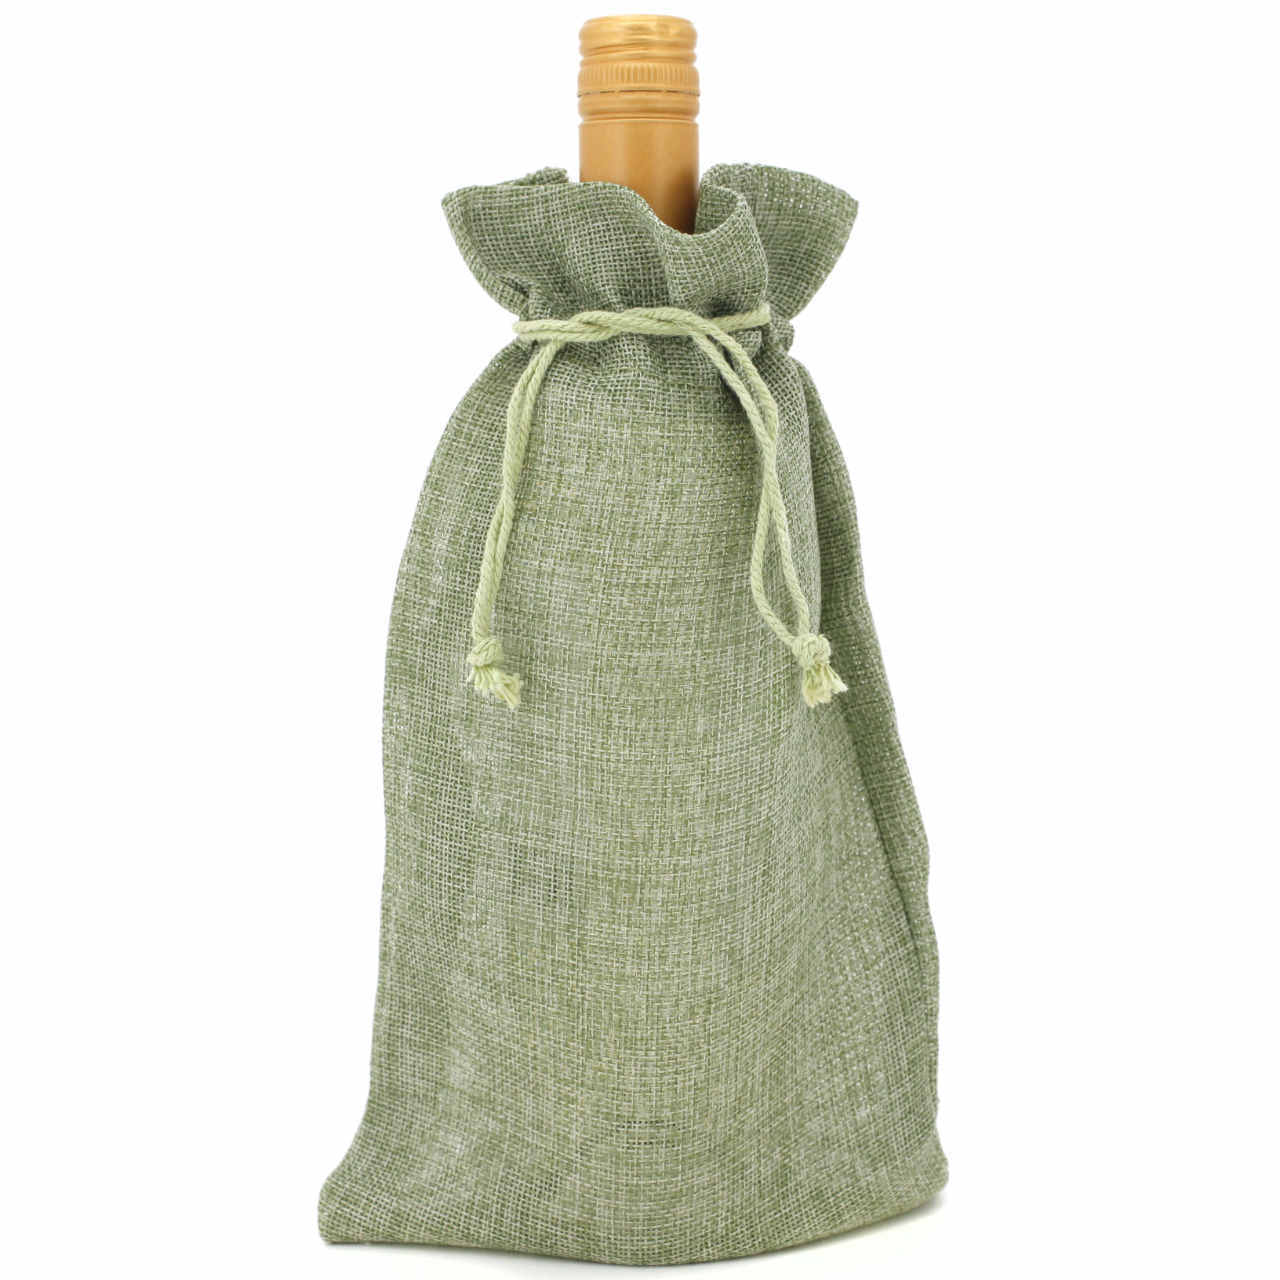 20 Burlap Style Cute Gift Party Favor Fabric Birthday Treat Goody Bag - Beige